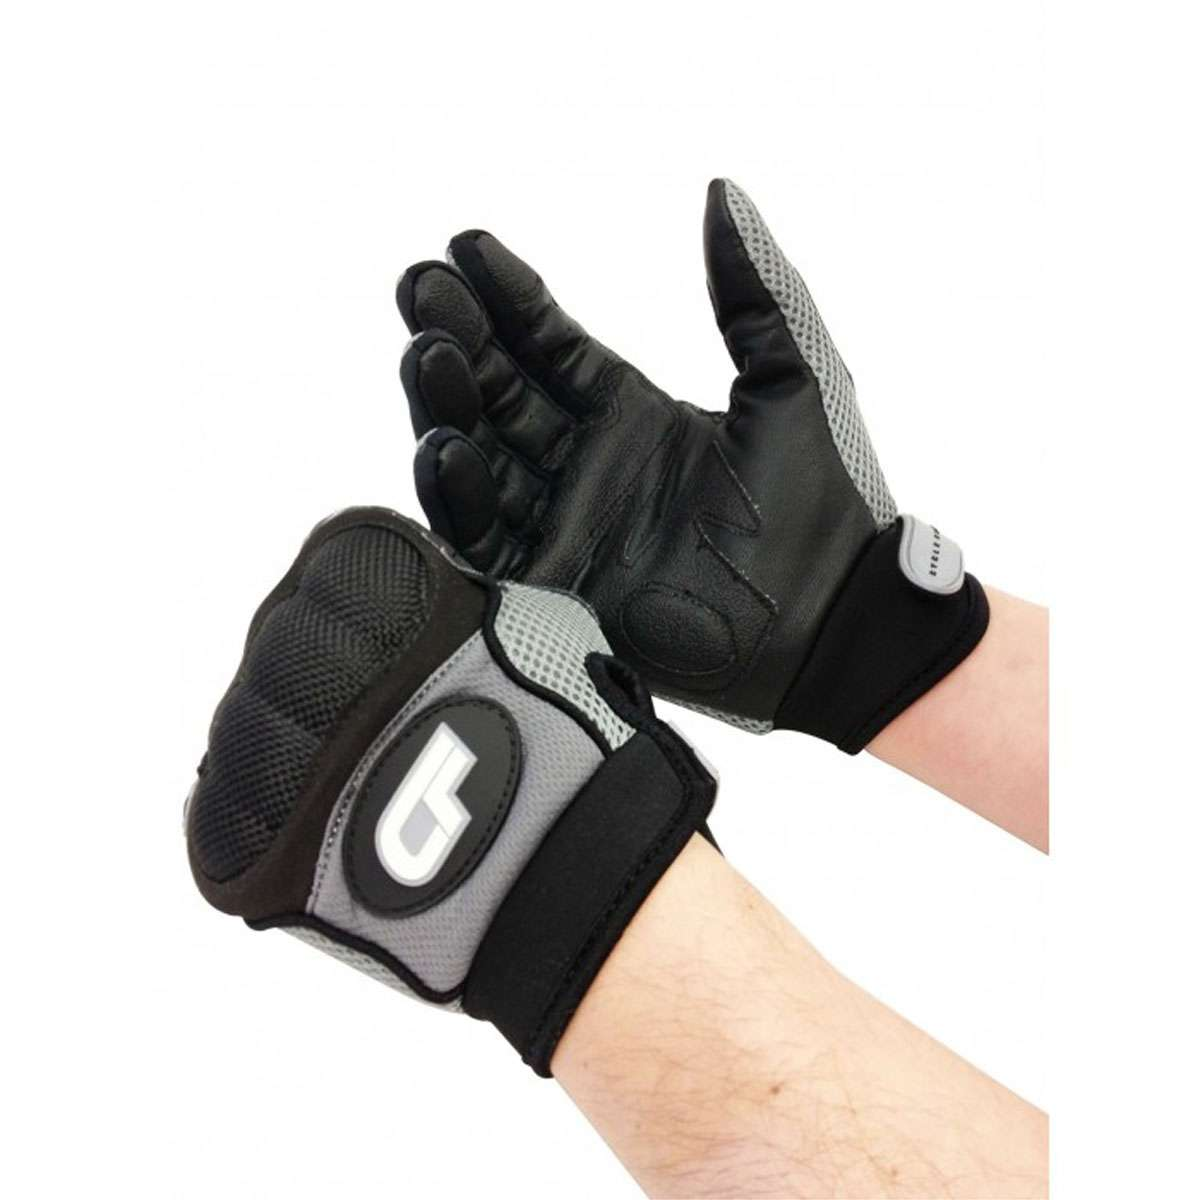 Cycle Force Tactical Bicycle Glove - Large - NM-723-FULL-L